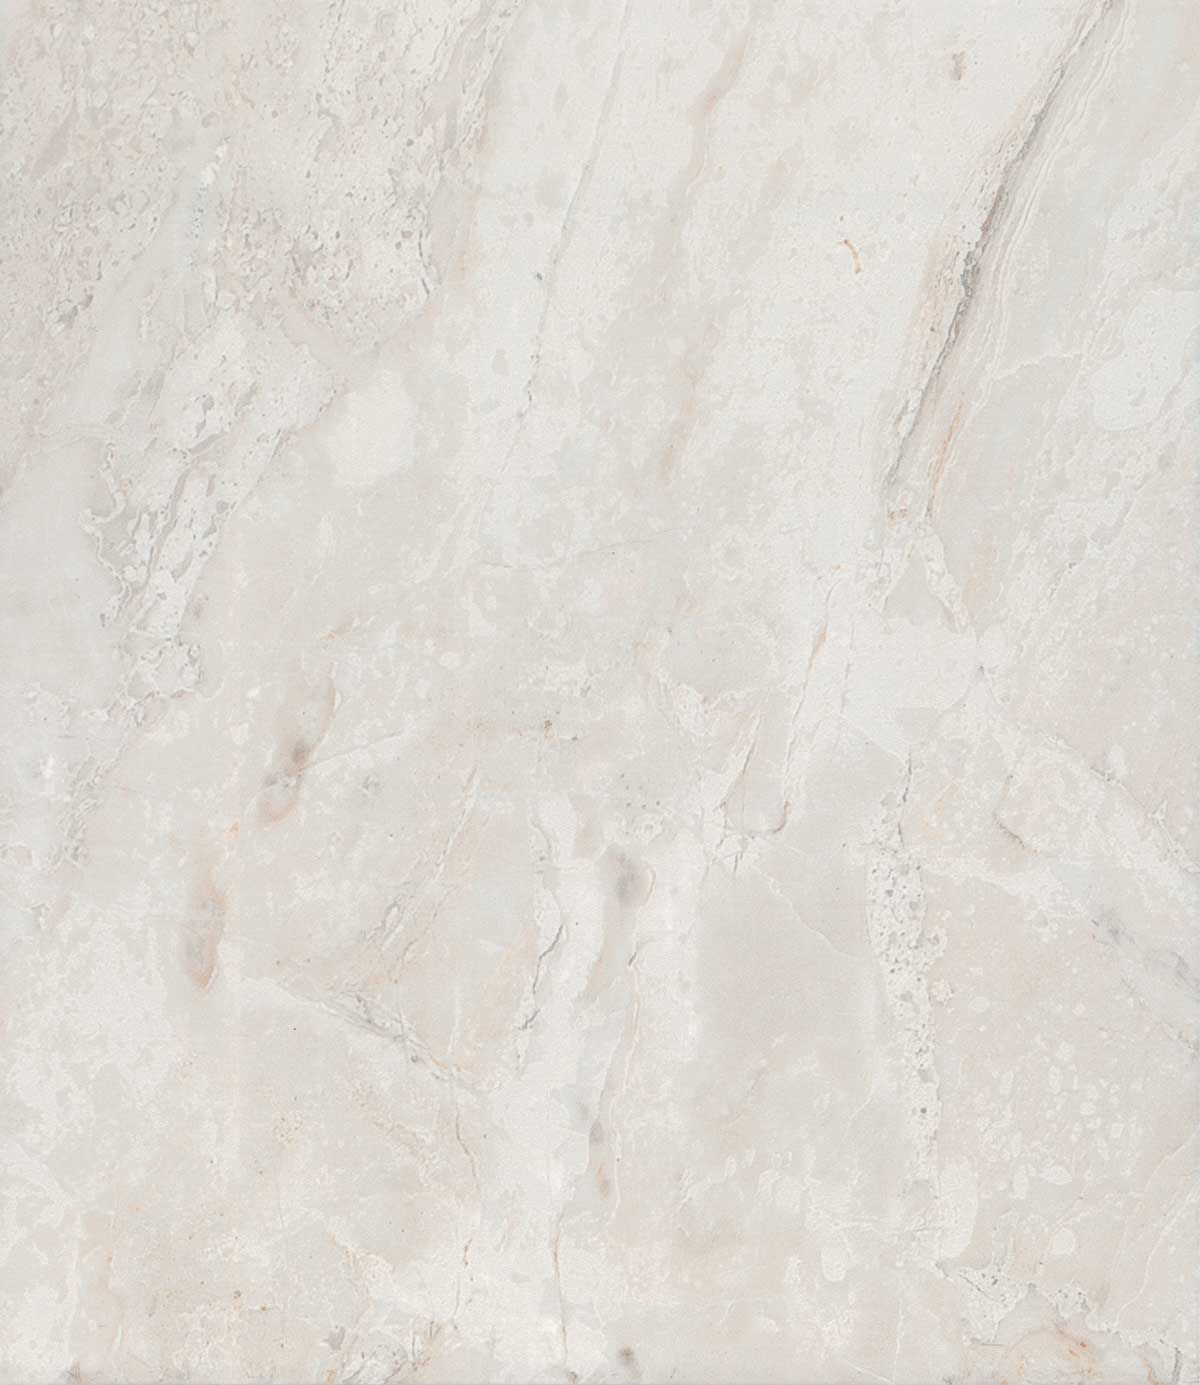 Positano blanco glazed porcelain floor by roca porcelain tiles glazed porcelain floor by roca doublecrazyfo Choice Image